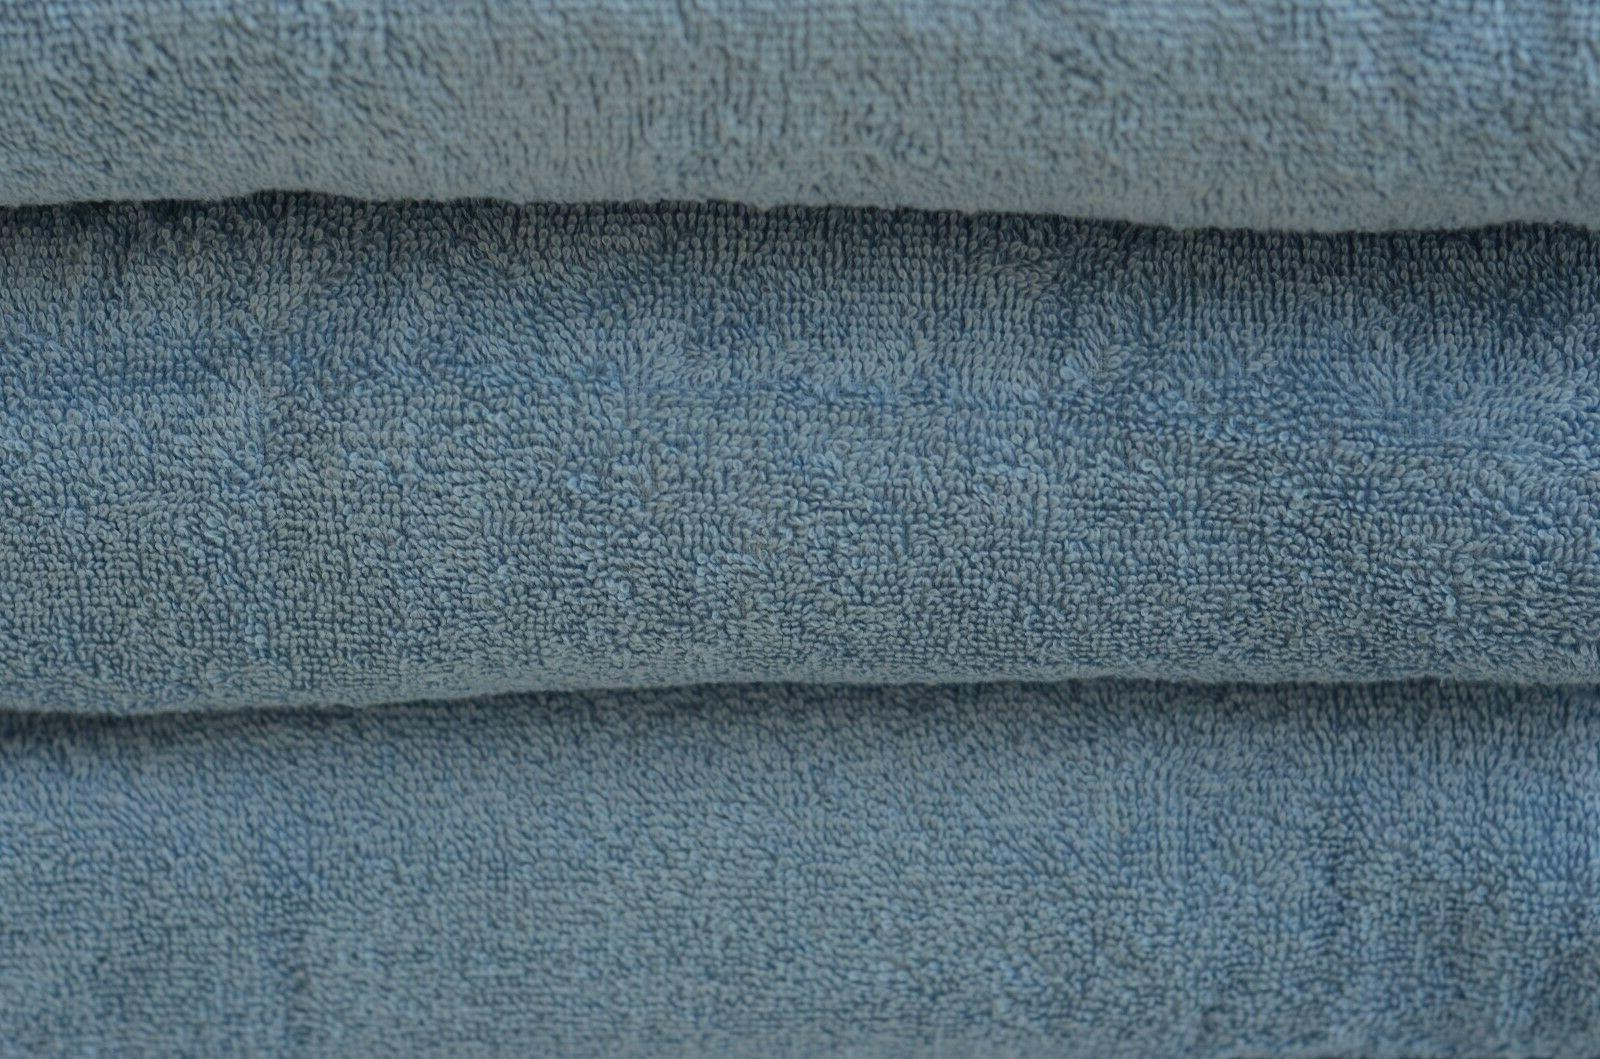 4-PACK COTTON TOWELS 30x60 in. QUALITY!